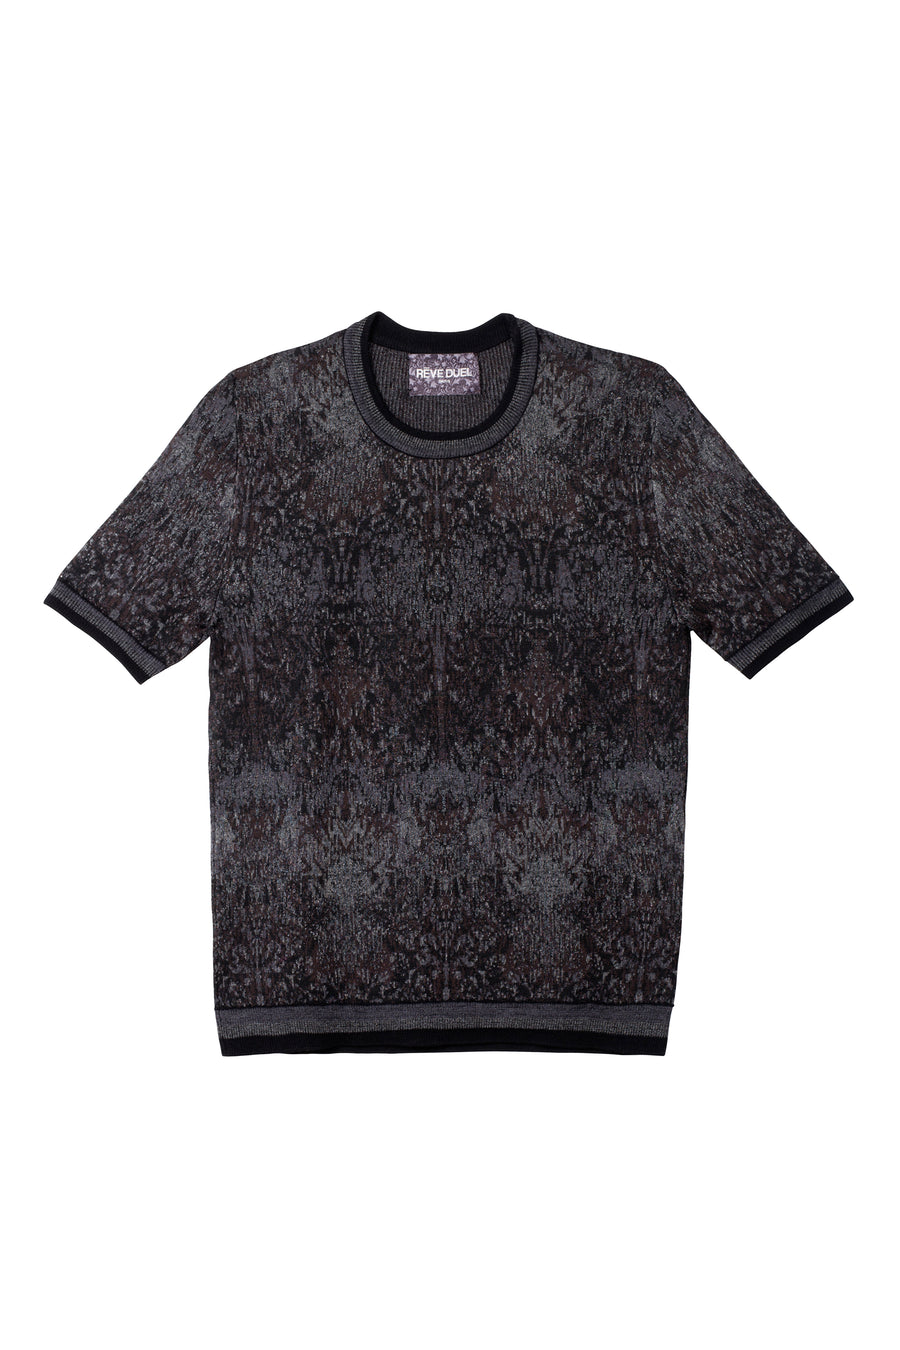 T-shirt Black Tapestry Jacquard